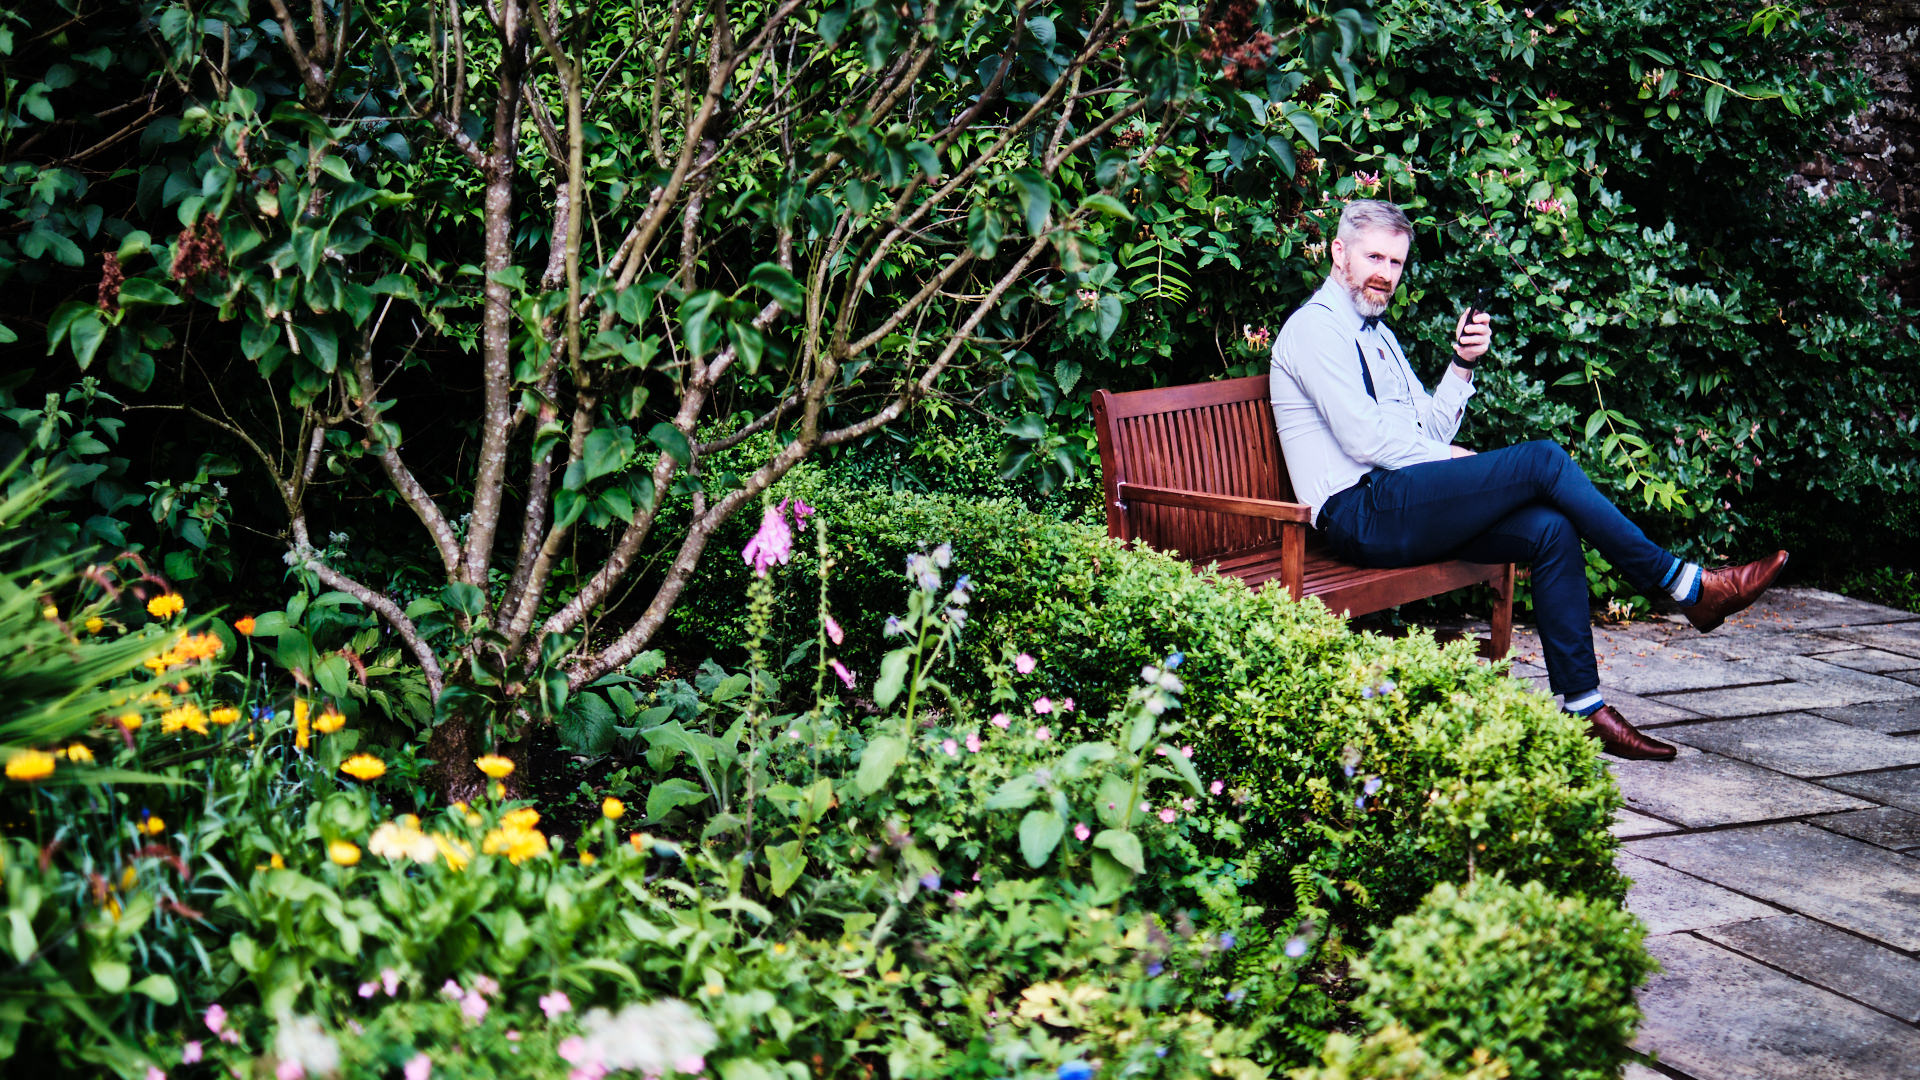 colour photograph of a wedding guest smoking a pipe in the garden of the wedding venue